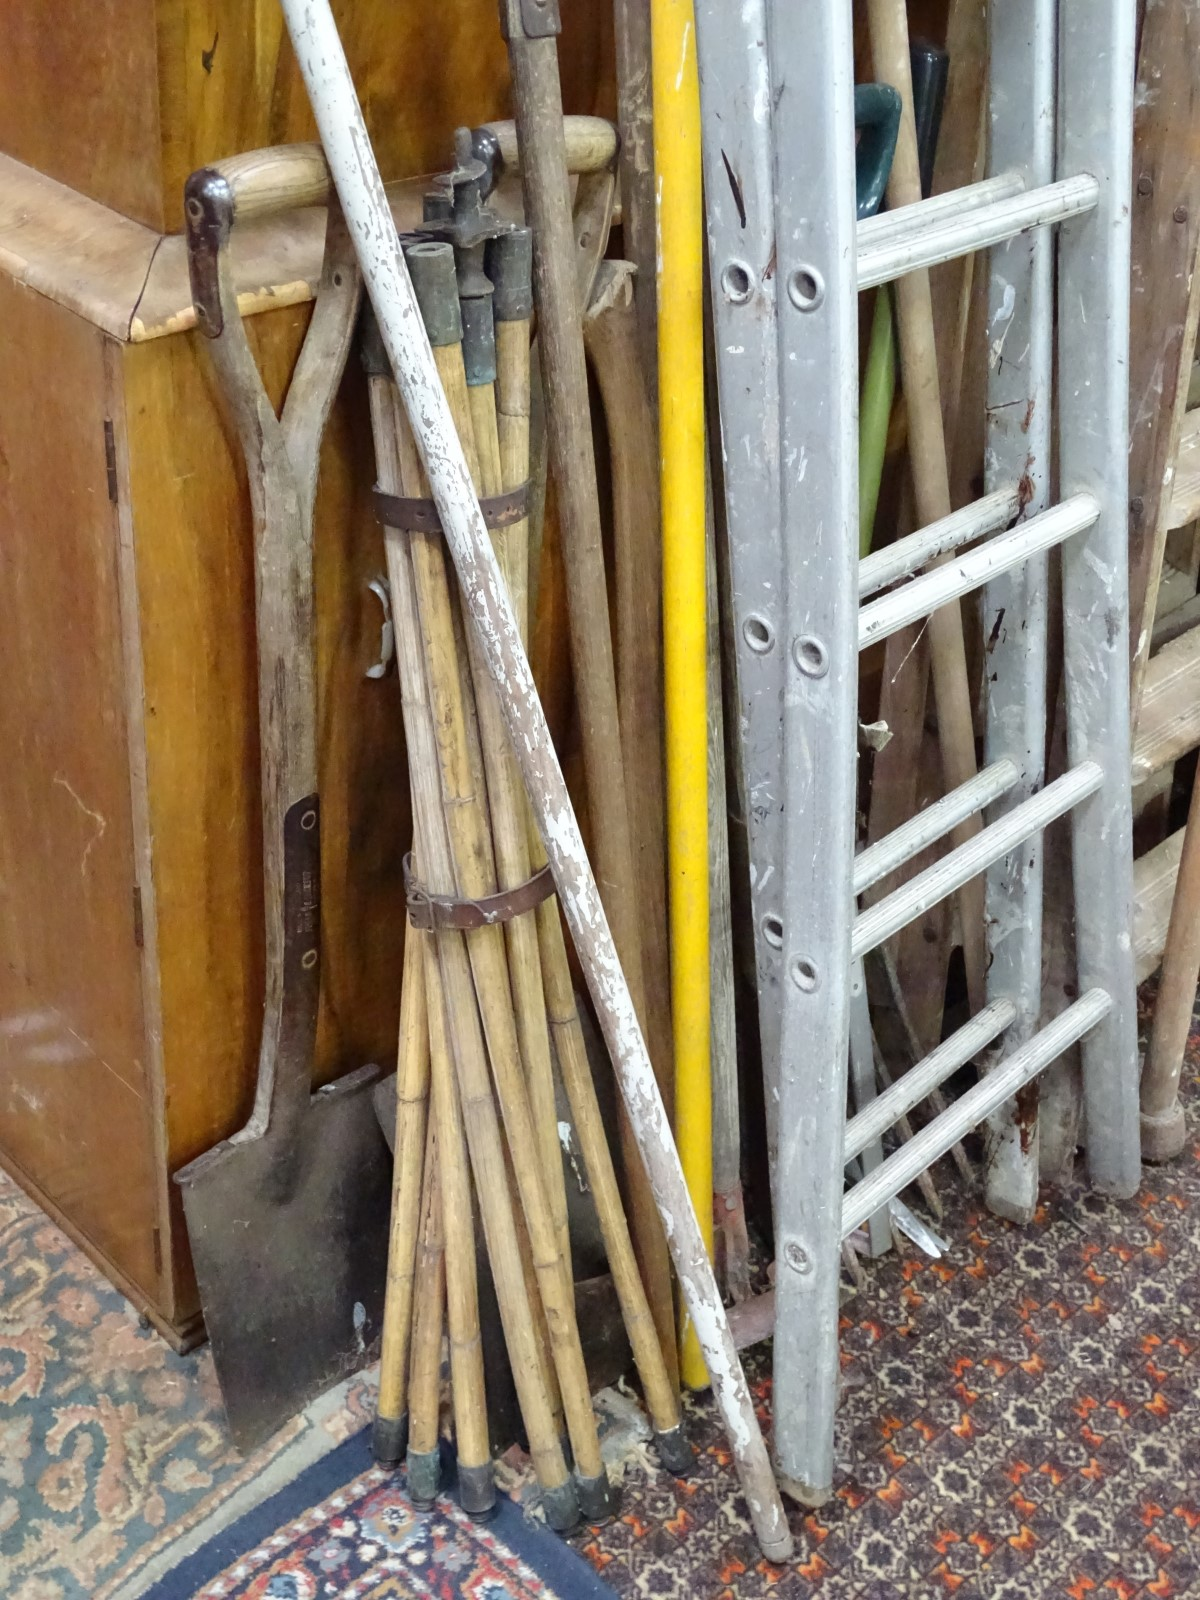 Lot 50 - A collection of long hand tools, ladders etc.